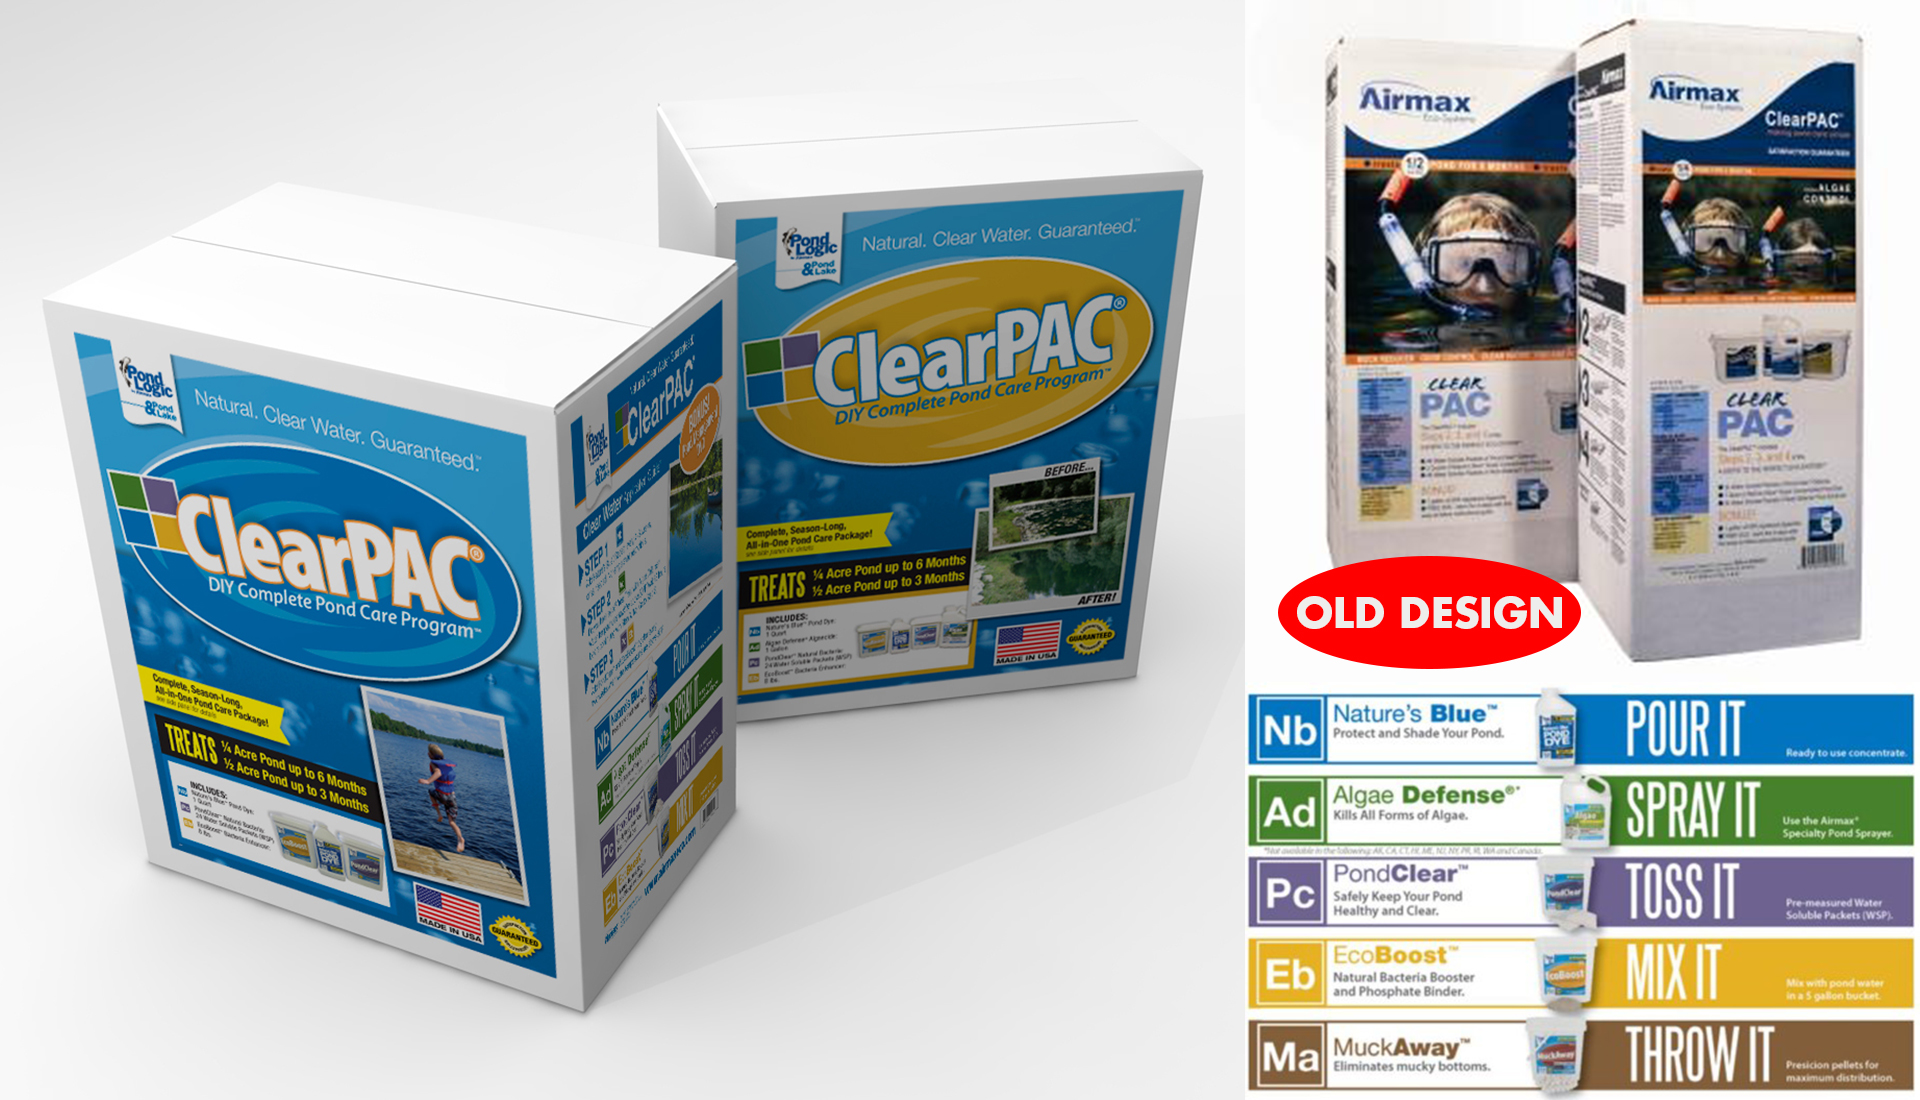 TPG-1920x1100-ClearPAC-Old-New.jpg